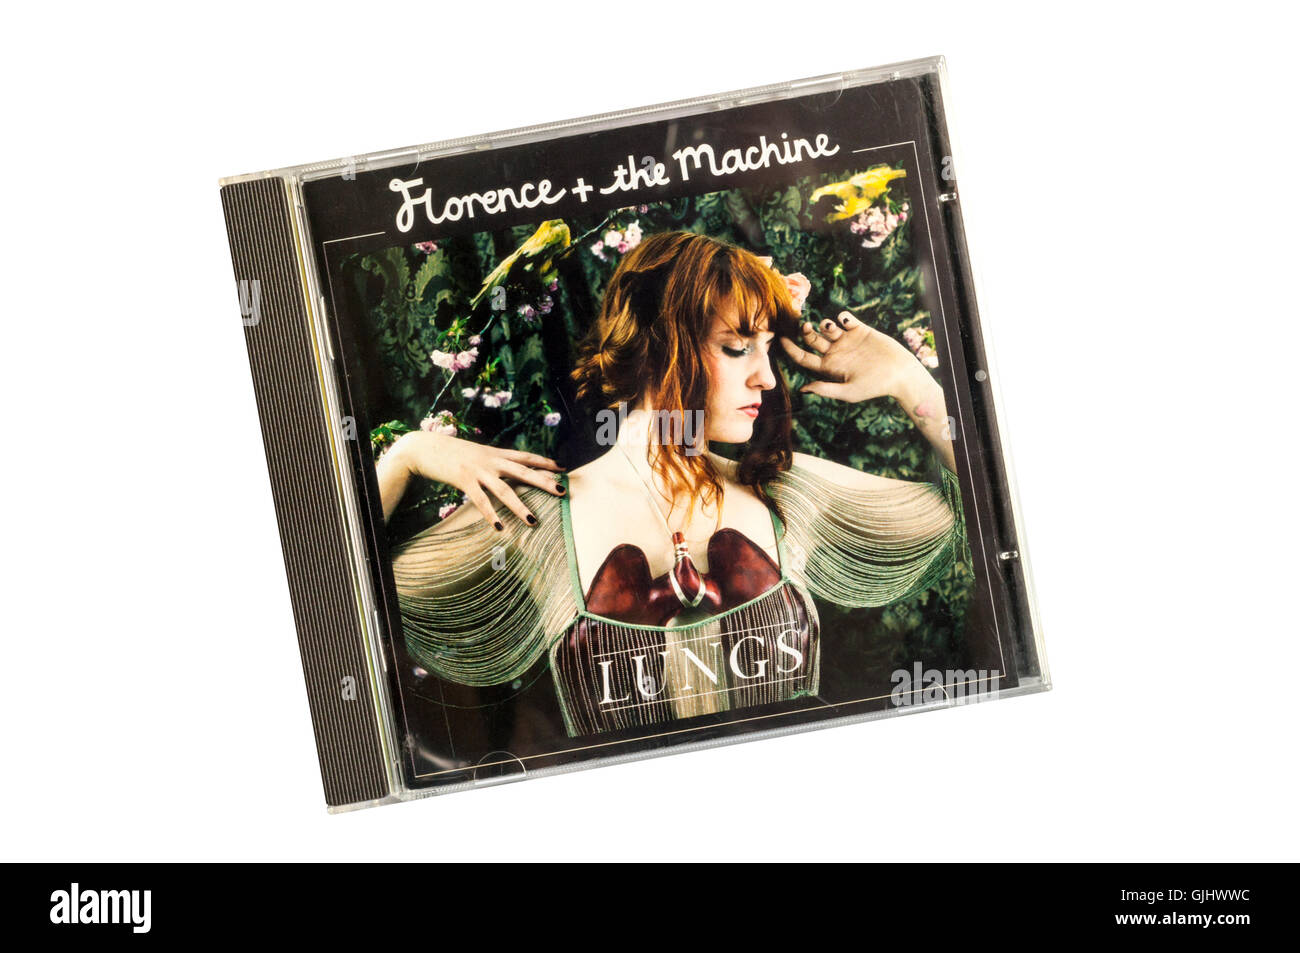 Lungs was the first studio album by Florence and the Machine. Released by Island Records in 2009. - Stock Image